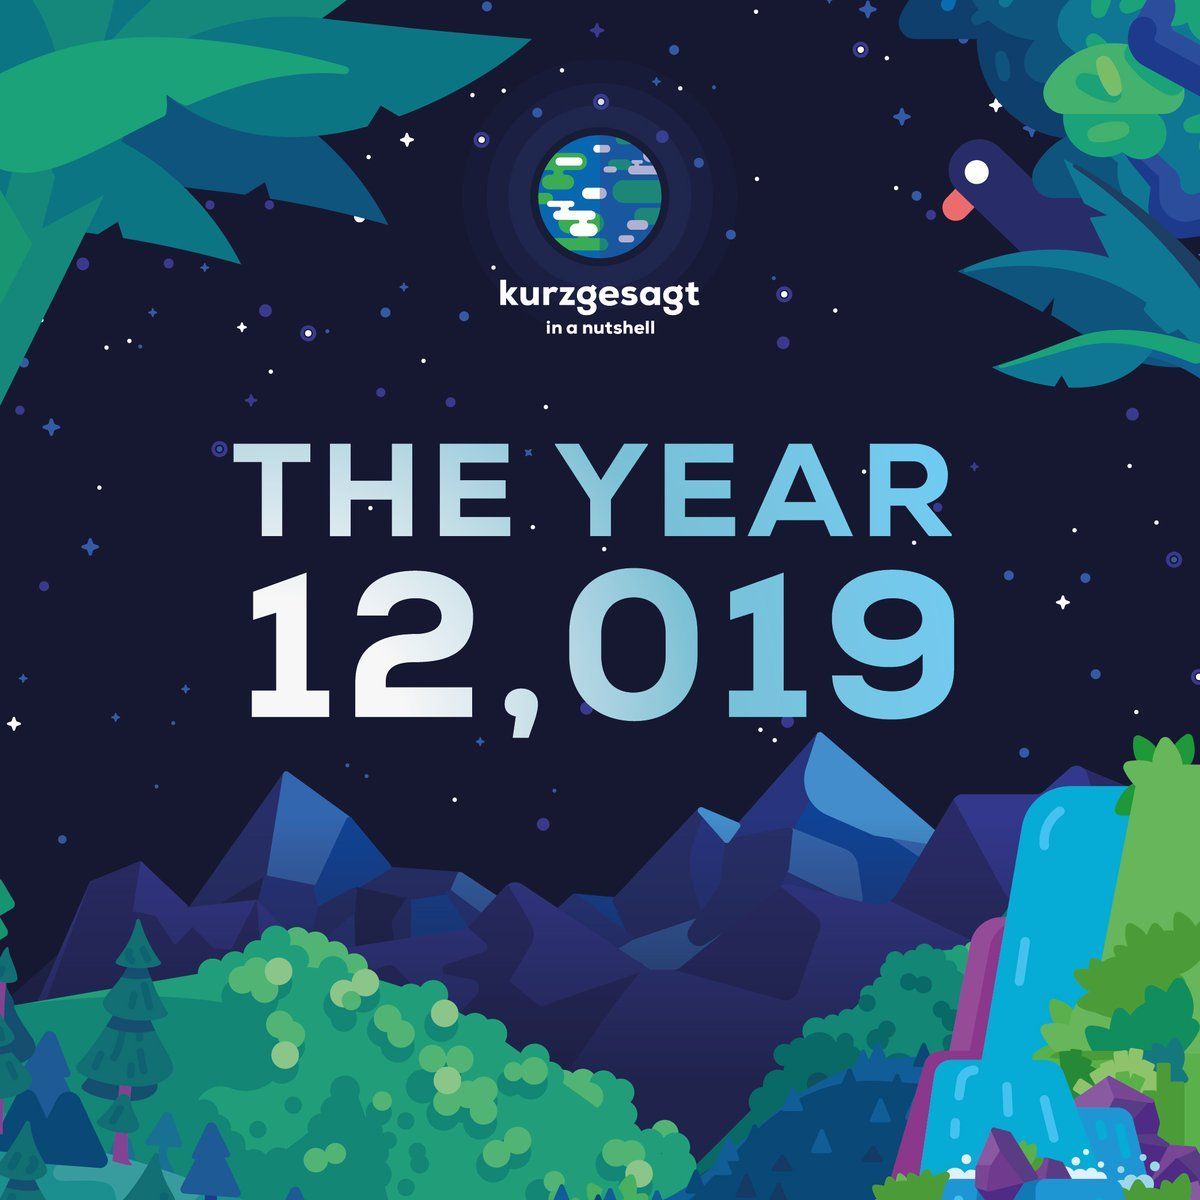 In A Nutshell Kurzgesagt Human Era Calendar The 12 019 Human Era Calendar Is Coming Soon Click The Green Button At The Bot In A Nutshell Thing 1 Thing 2 Human